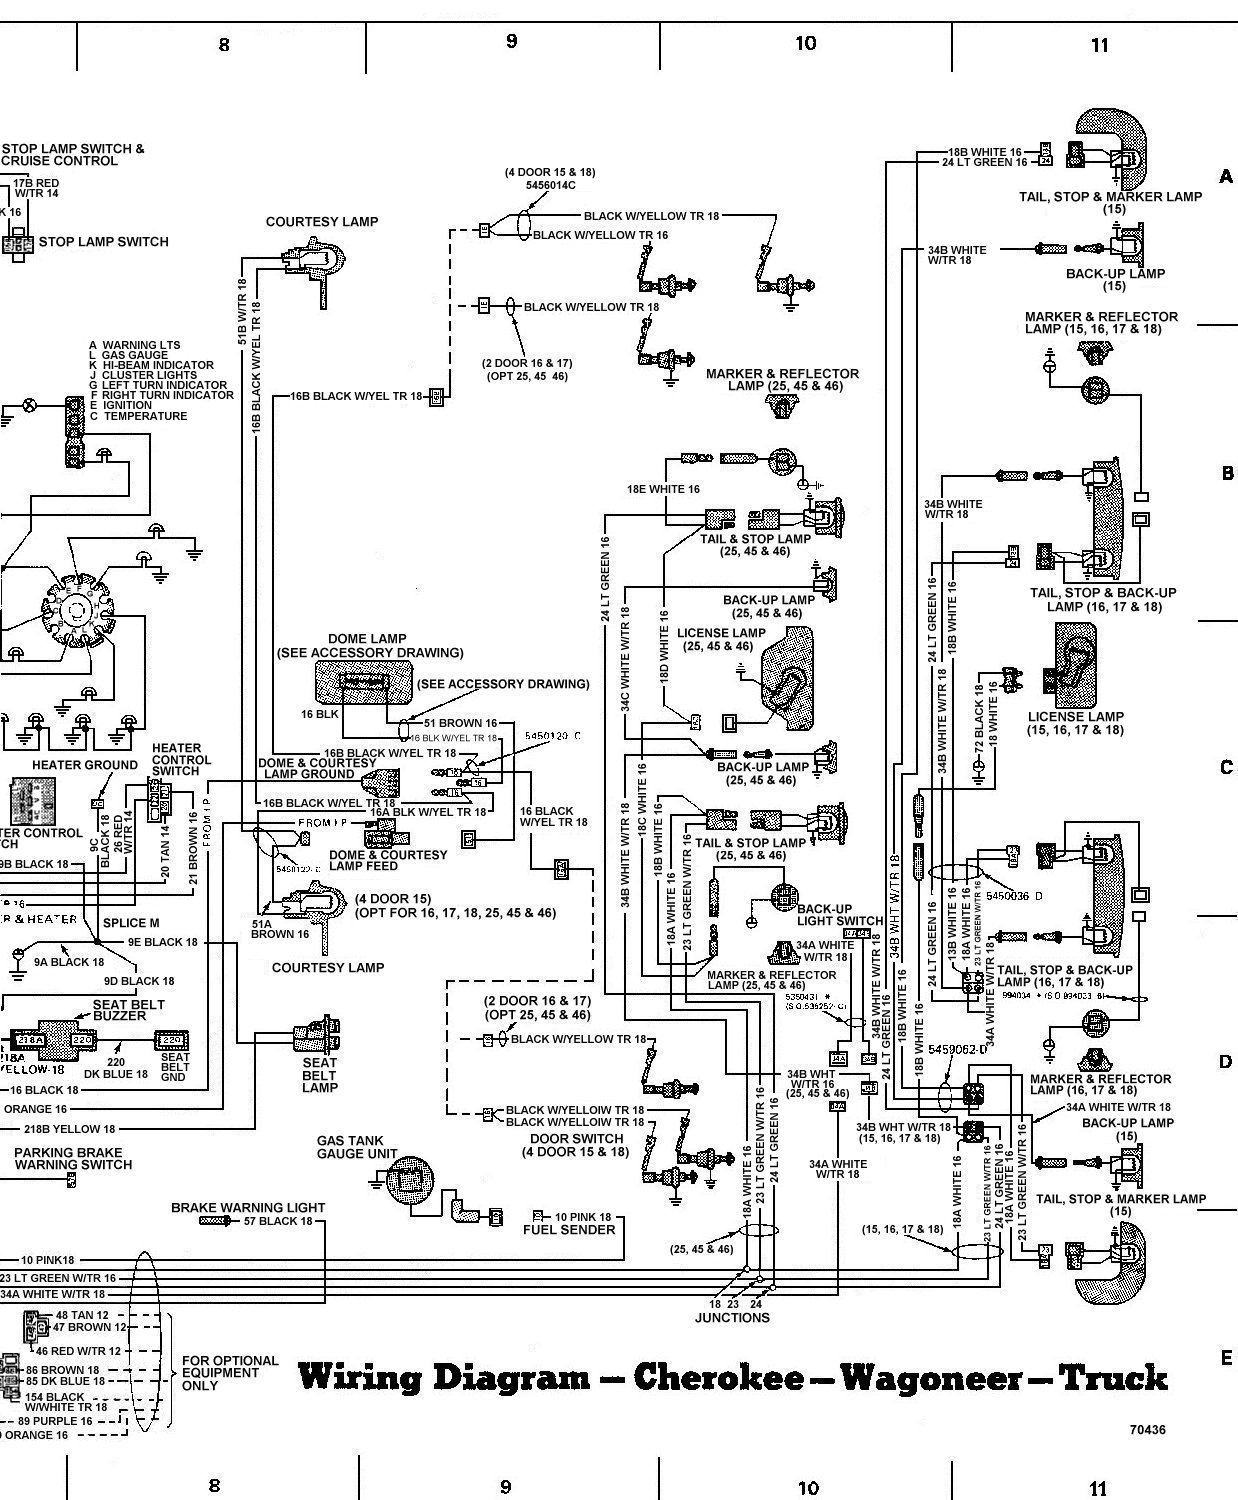 Wire Diagram For Jeep Cherokee Wiring Diagram For You 1996 Jeep Grand  Cherokee Electrical Diagram Wiring Diagram For 2000 Jeep Grand Cherokee